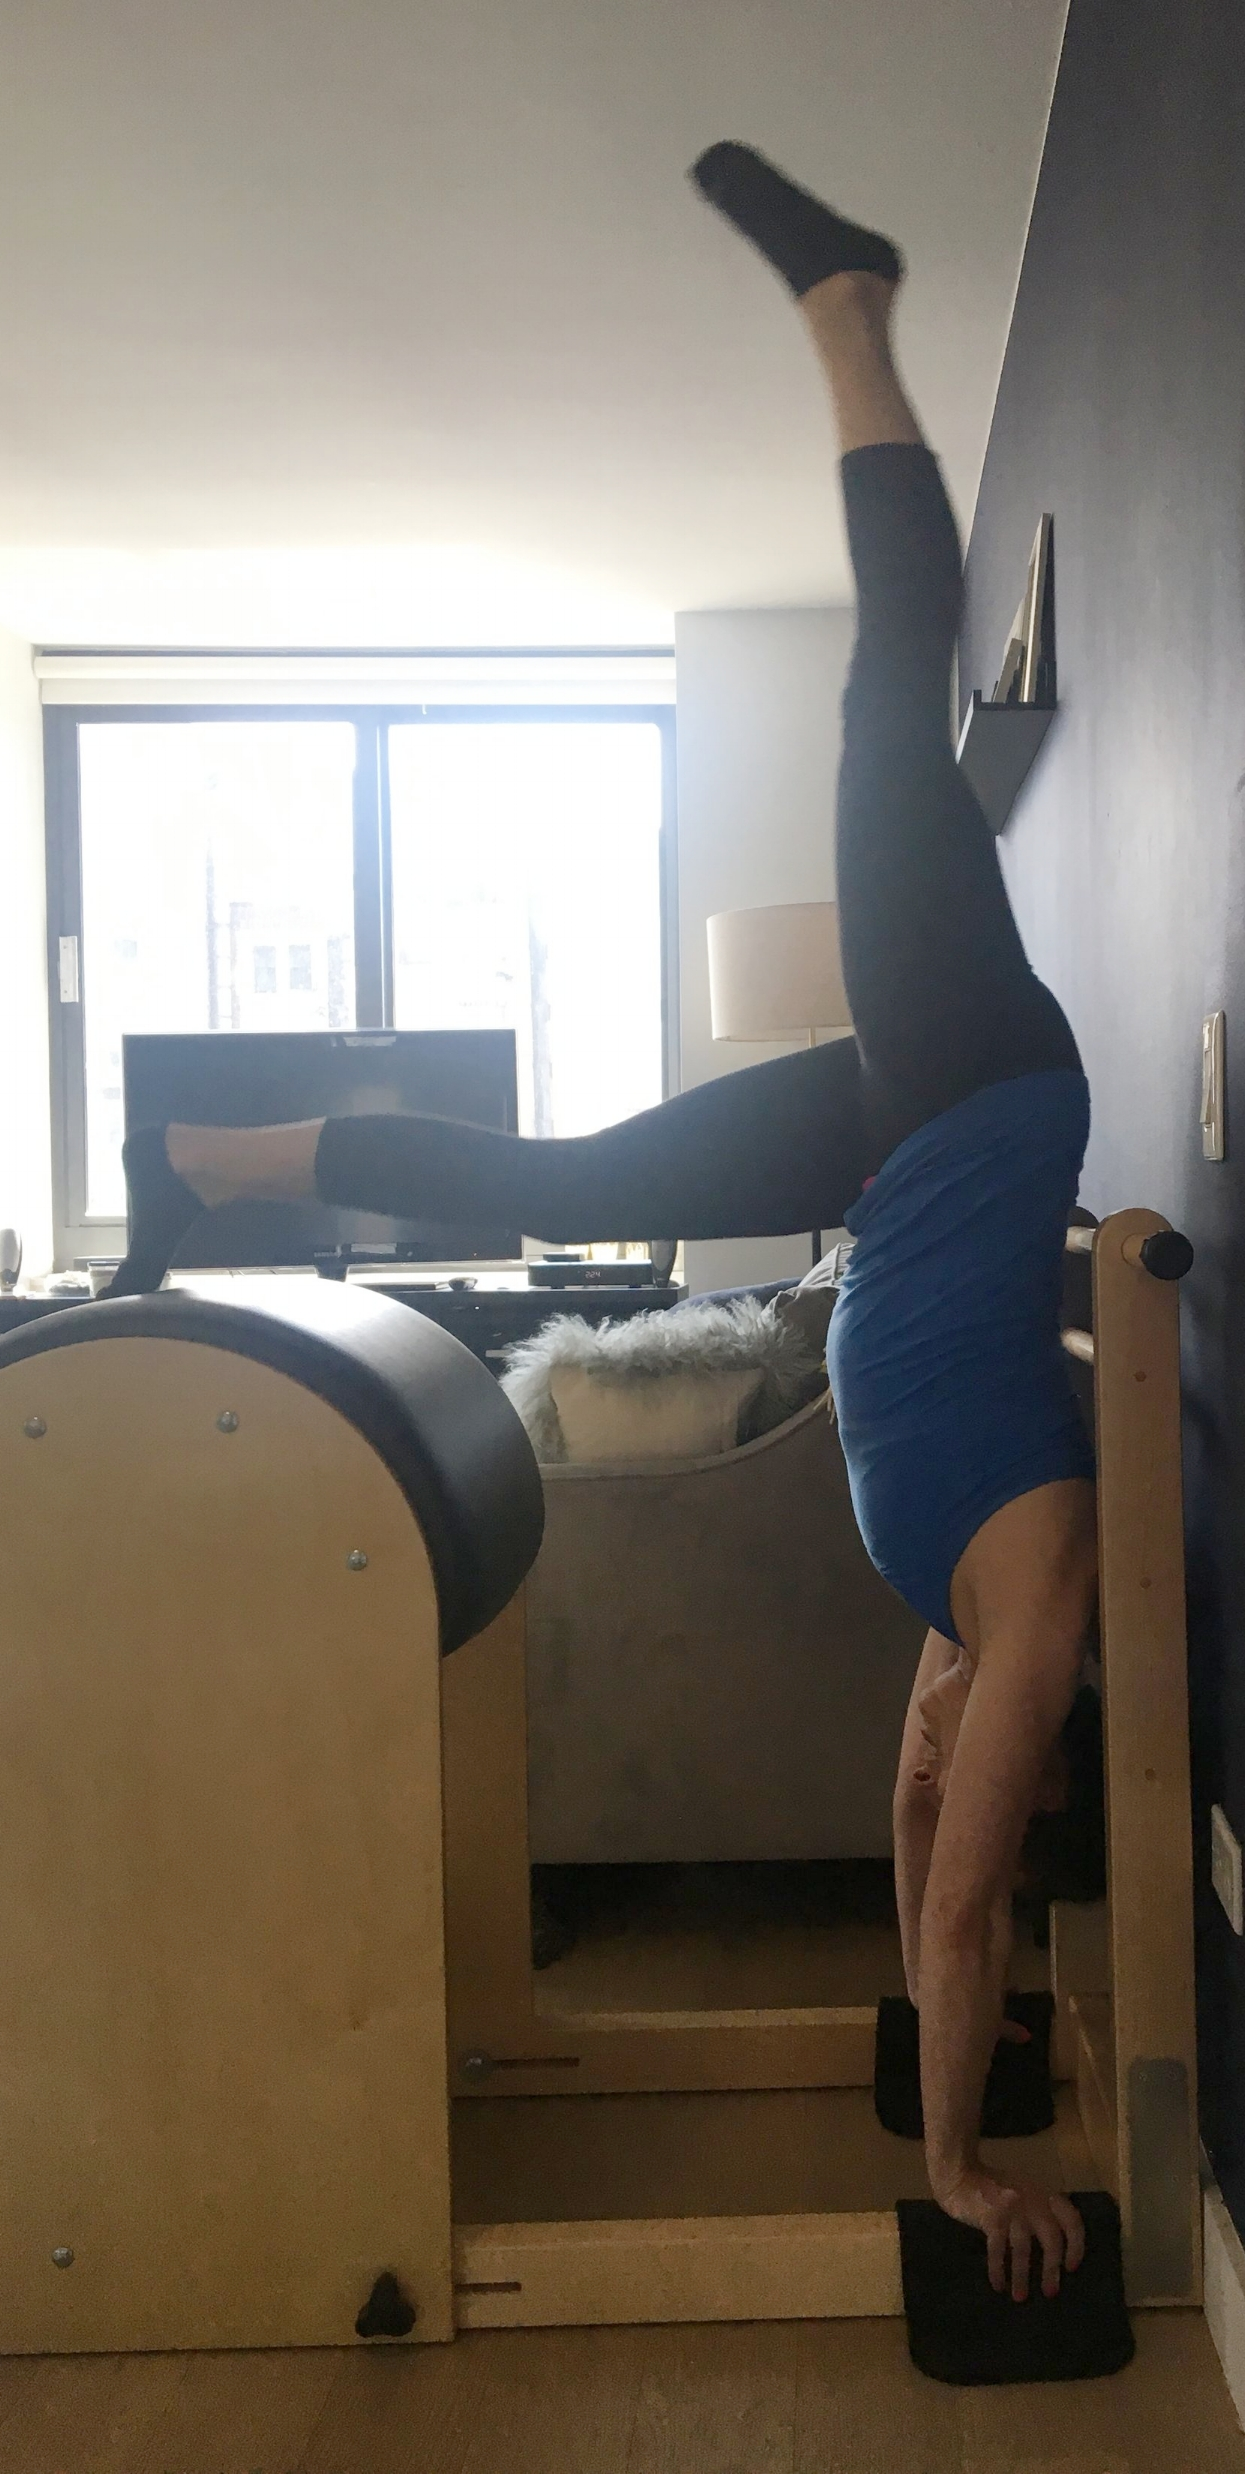 A beautiful handstand prep on the ladder barrel performed by Sarah, owner of The Pilates Line NY!